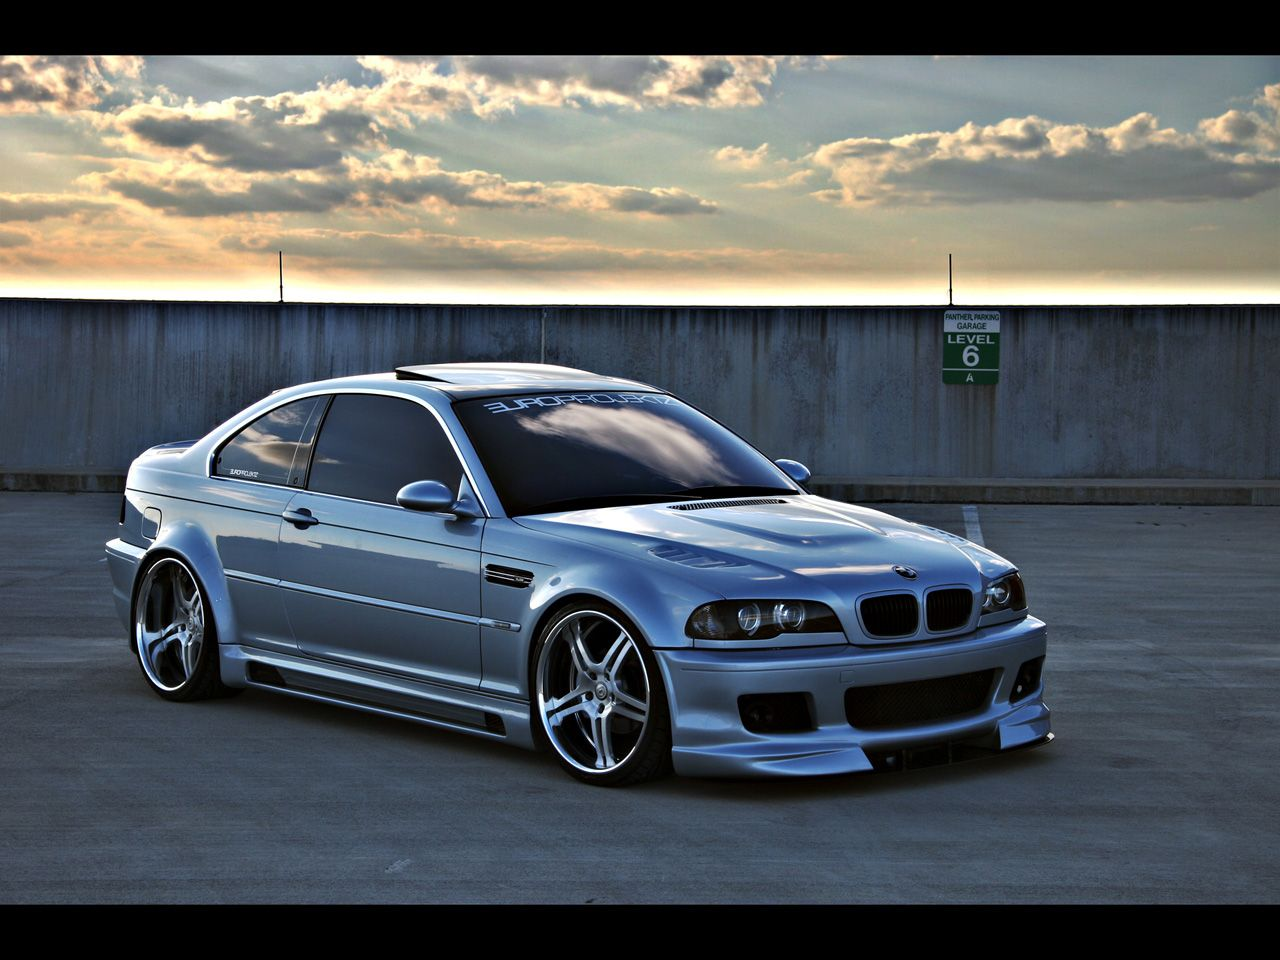 Bmw 325ci Photos News Reviews Specs Car Listings Bmw 325 Bmw Bmw Wallpapers